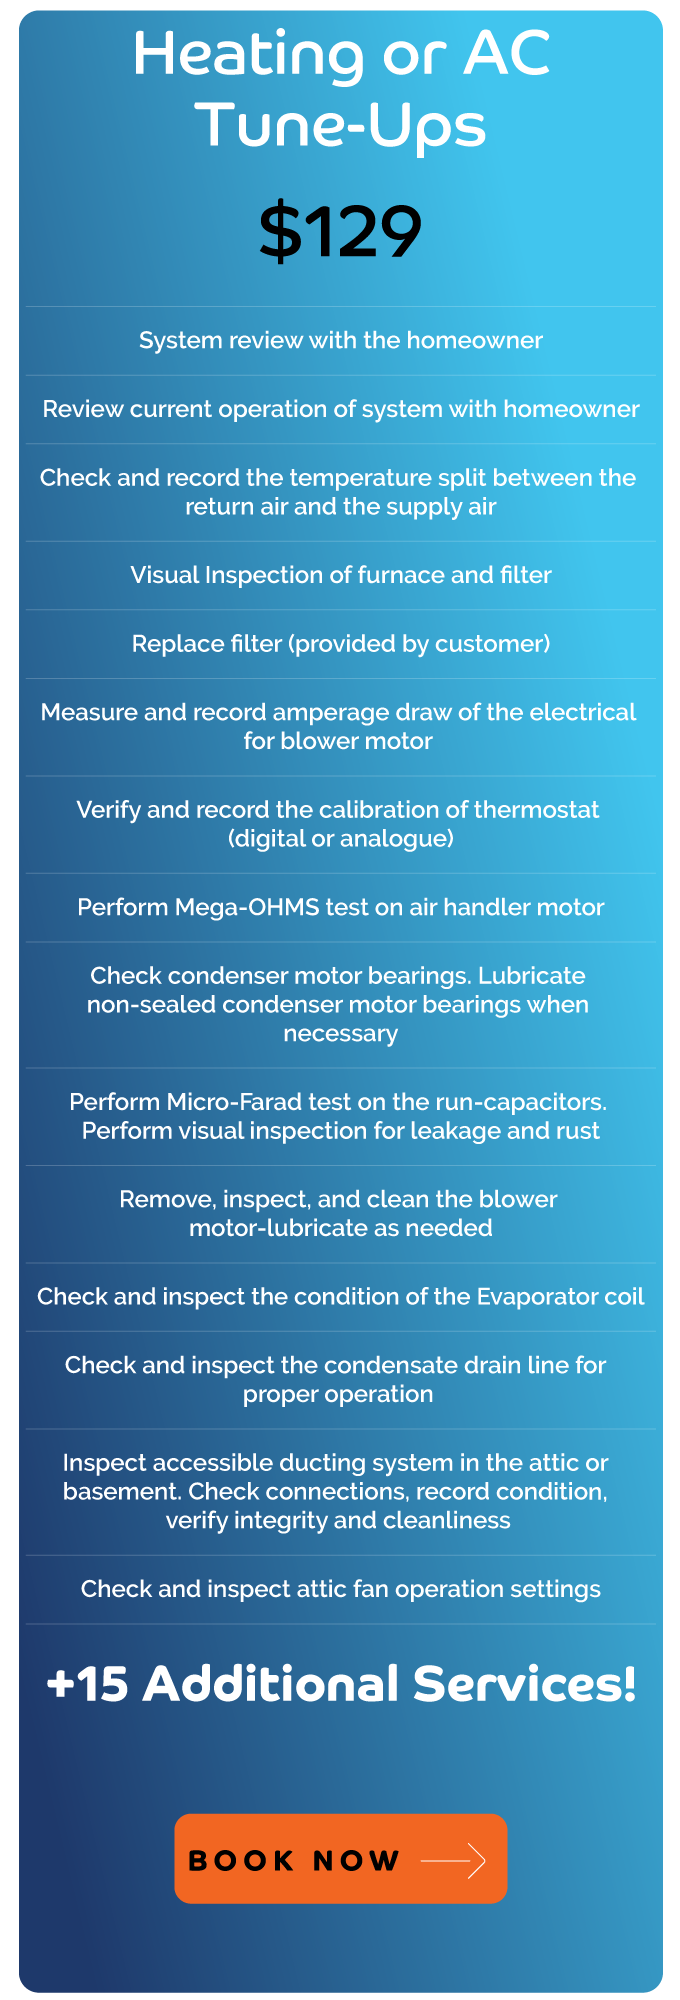 Heating and Air Conditioning Tune-ups